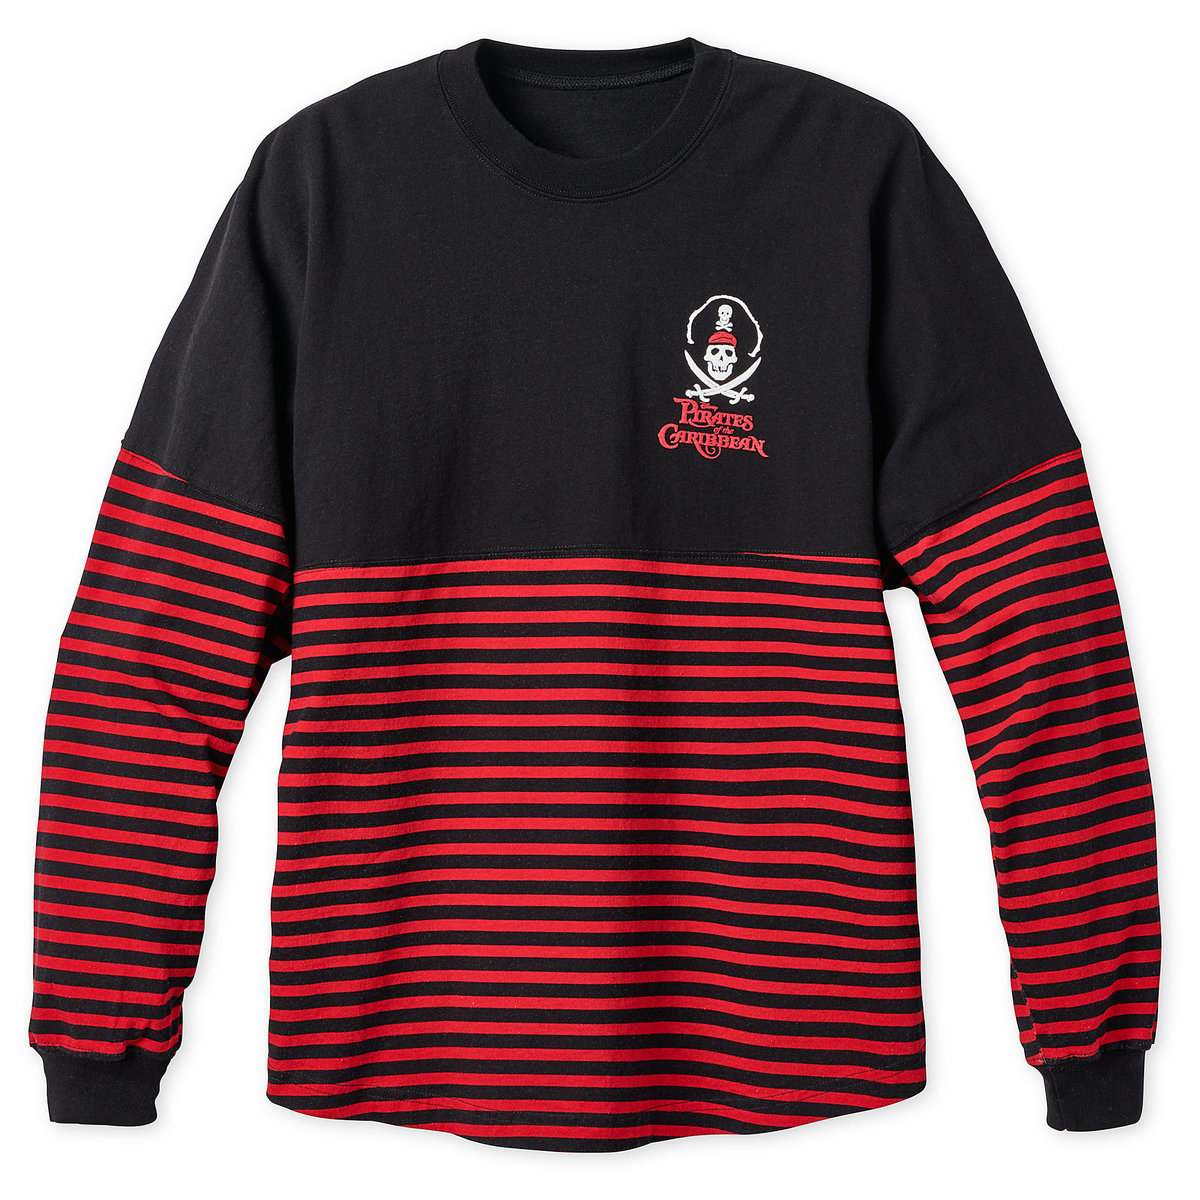 694fb1d67 Product Image of Pirates of the Caribbean Spirit Jersey for Adults - Walt Disney  World #